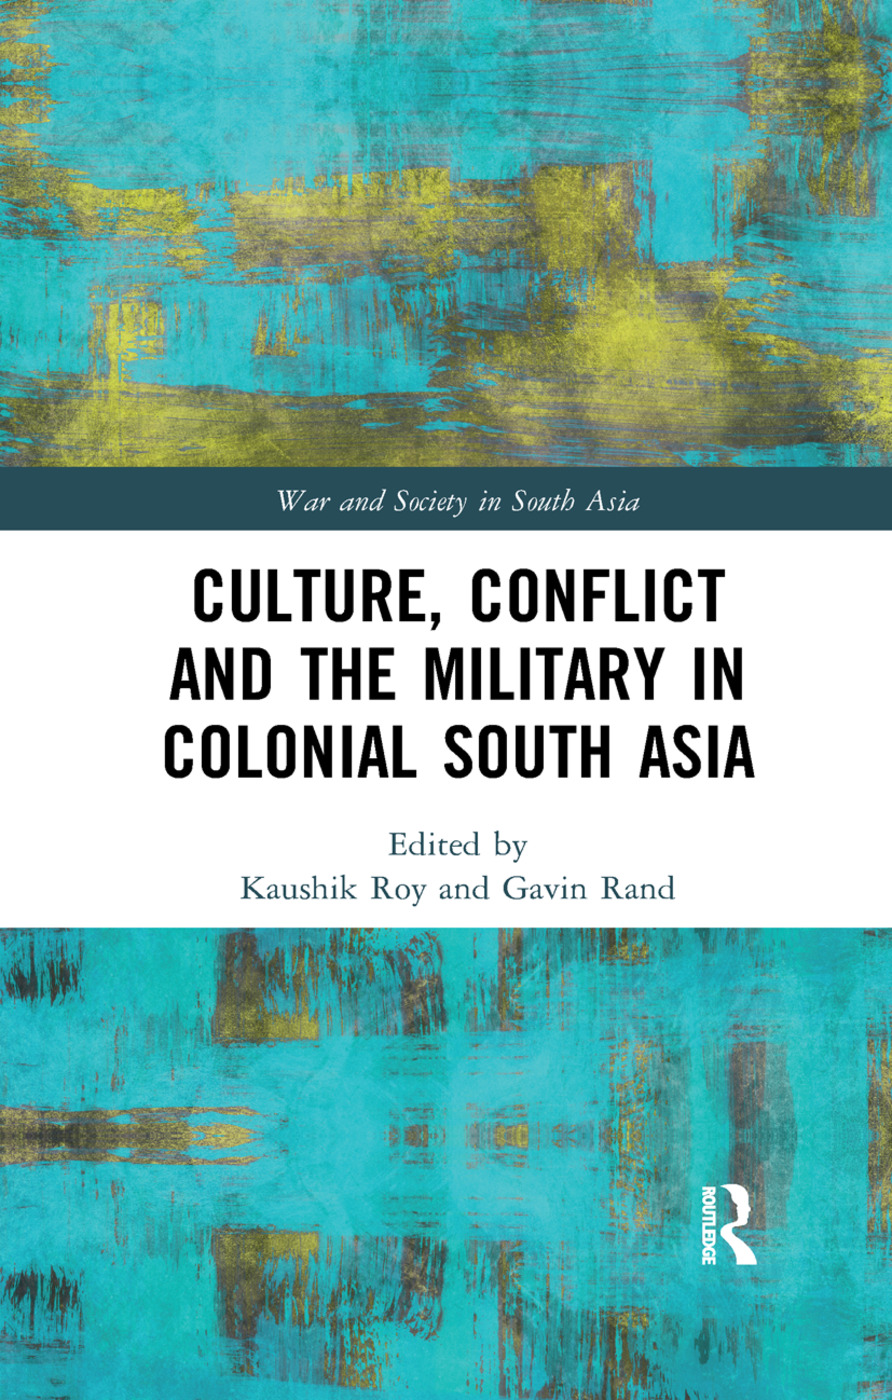 Culture, Conflict and the Military in Colonial South Asia